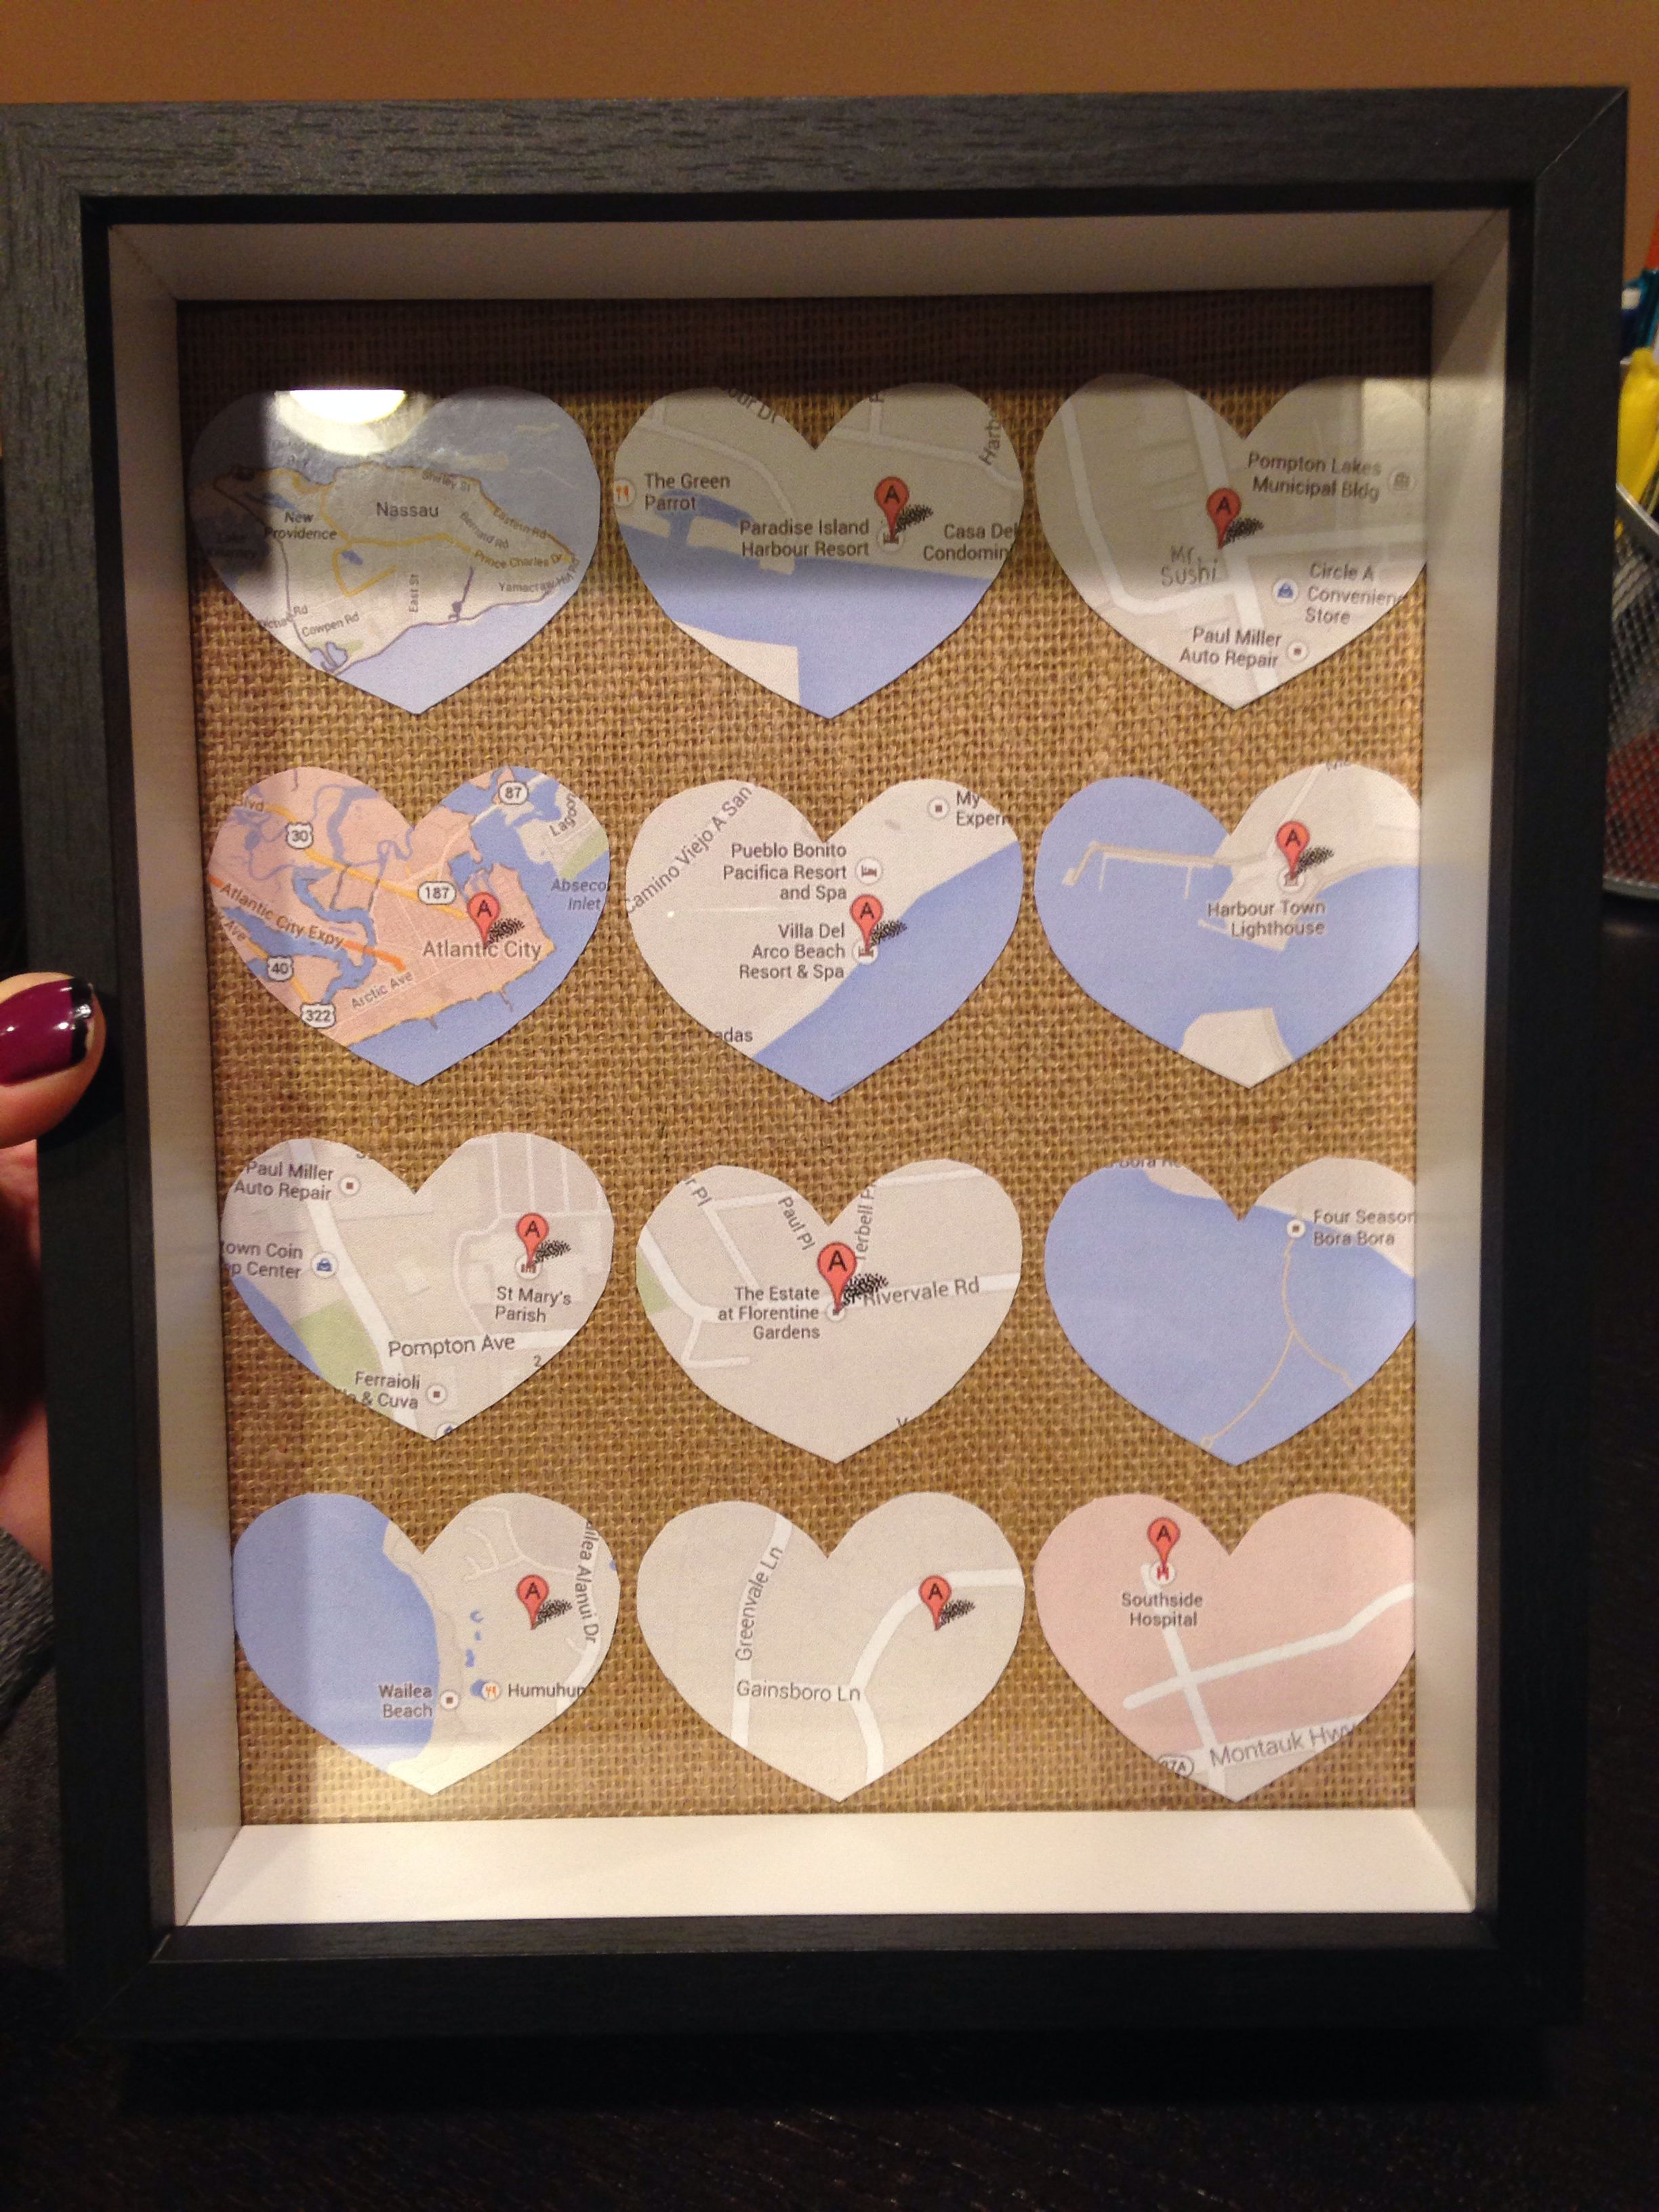 One Year Wedding Anniversary Idea Is The Of Paper Map Where We Met Our First Kiss